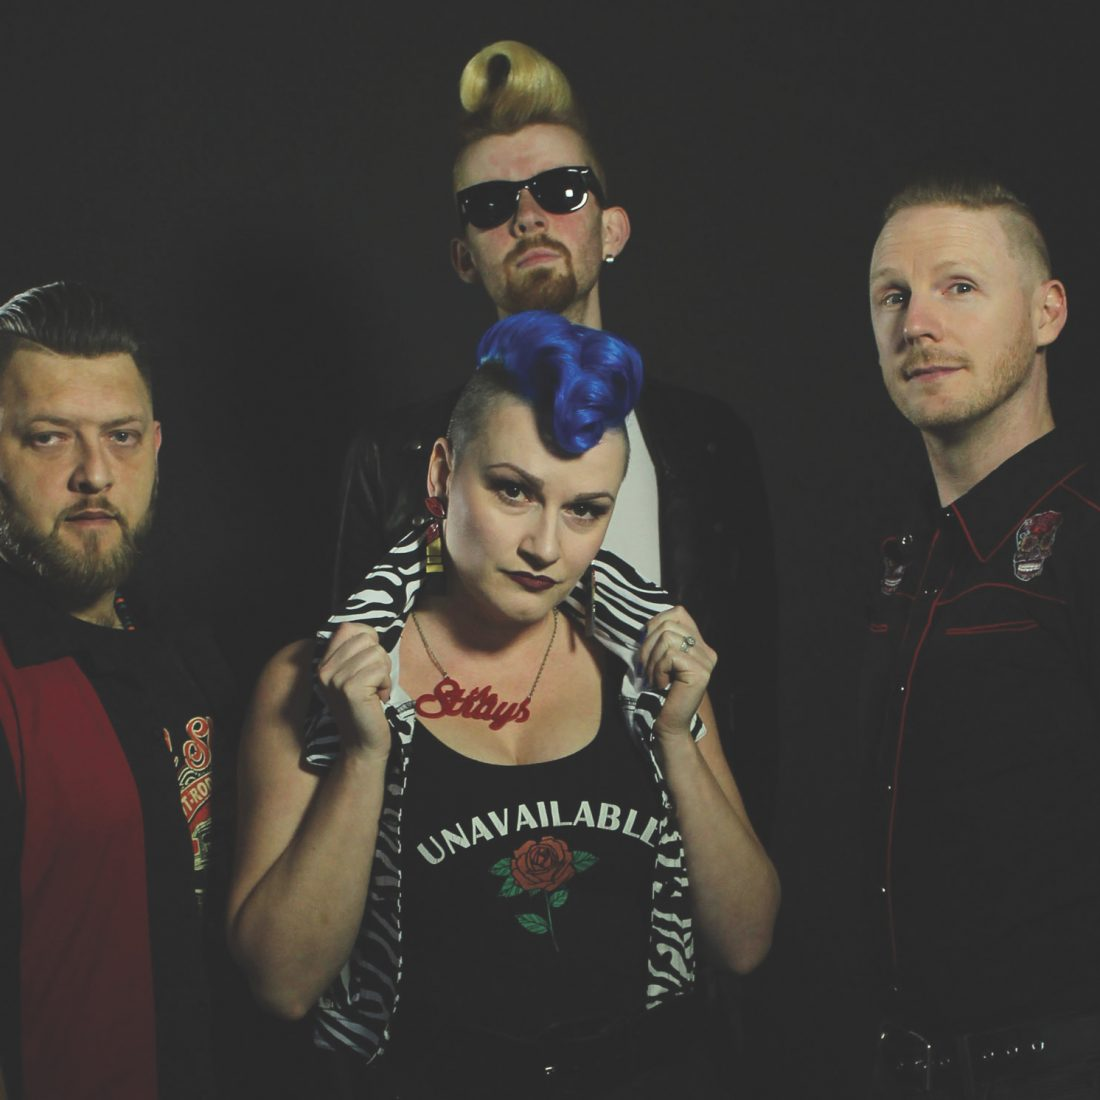 Q&A – The Strays